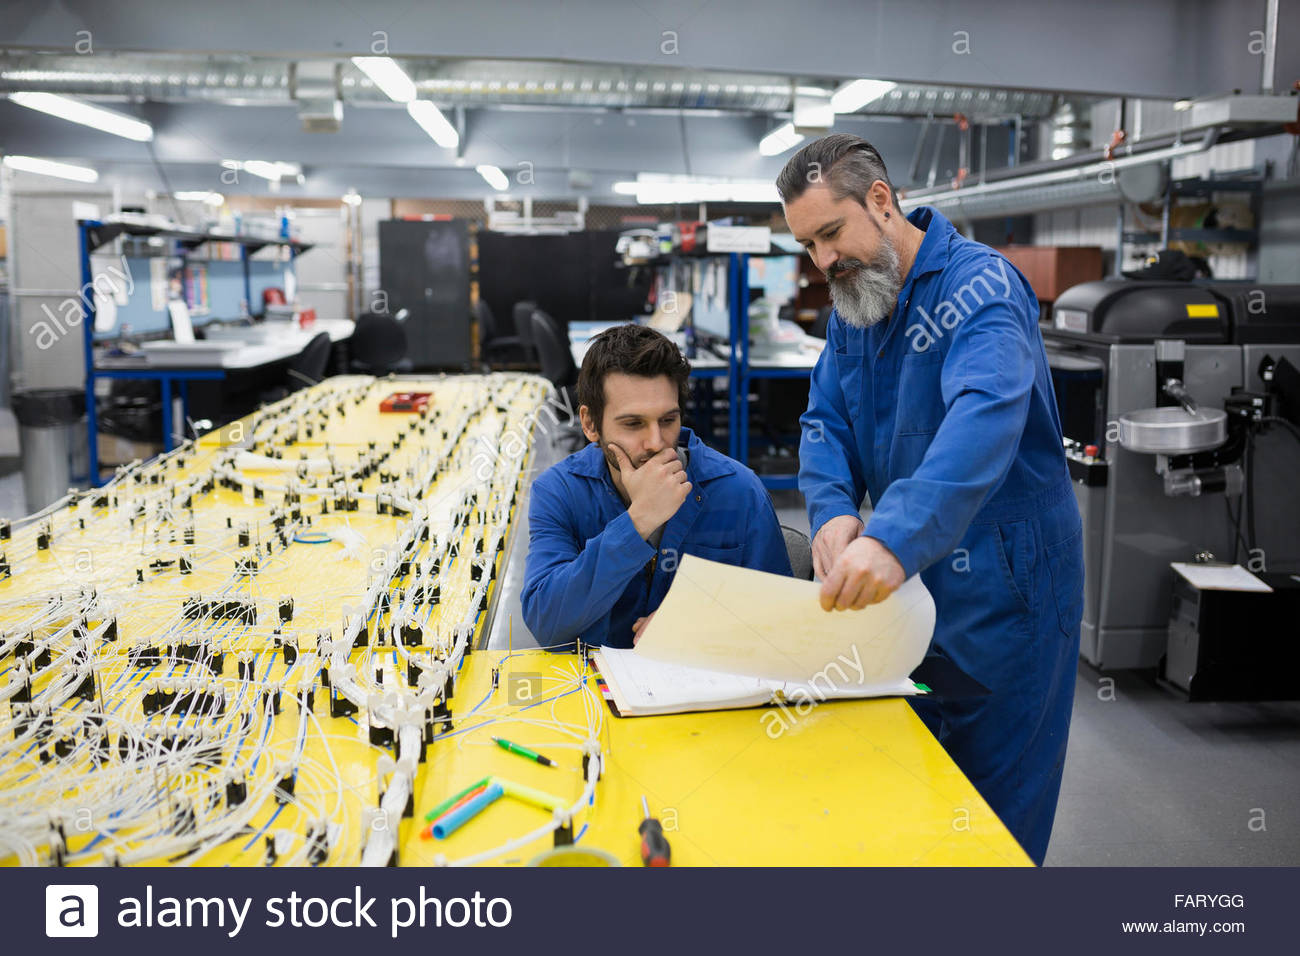 Wiring Harness Stock Photos Images Alamy Testing Equipment Helicopter Technicians Reviewing Blueprints At Image